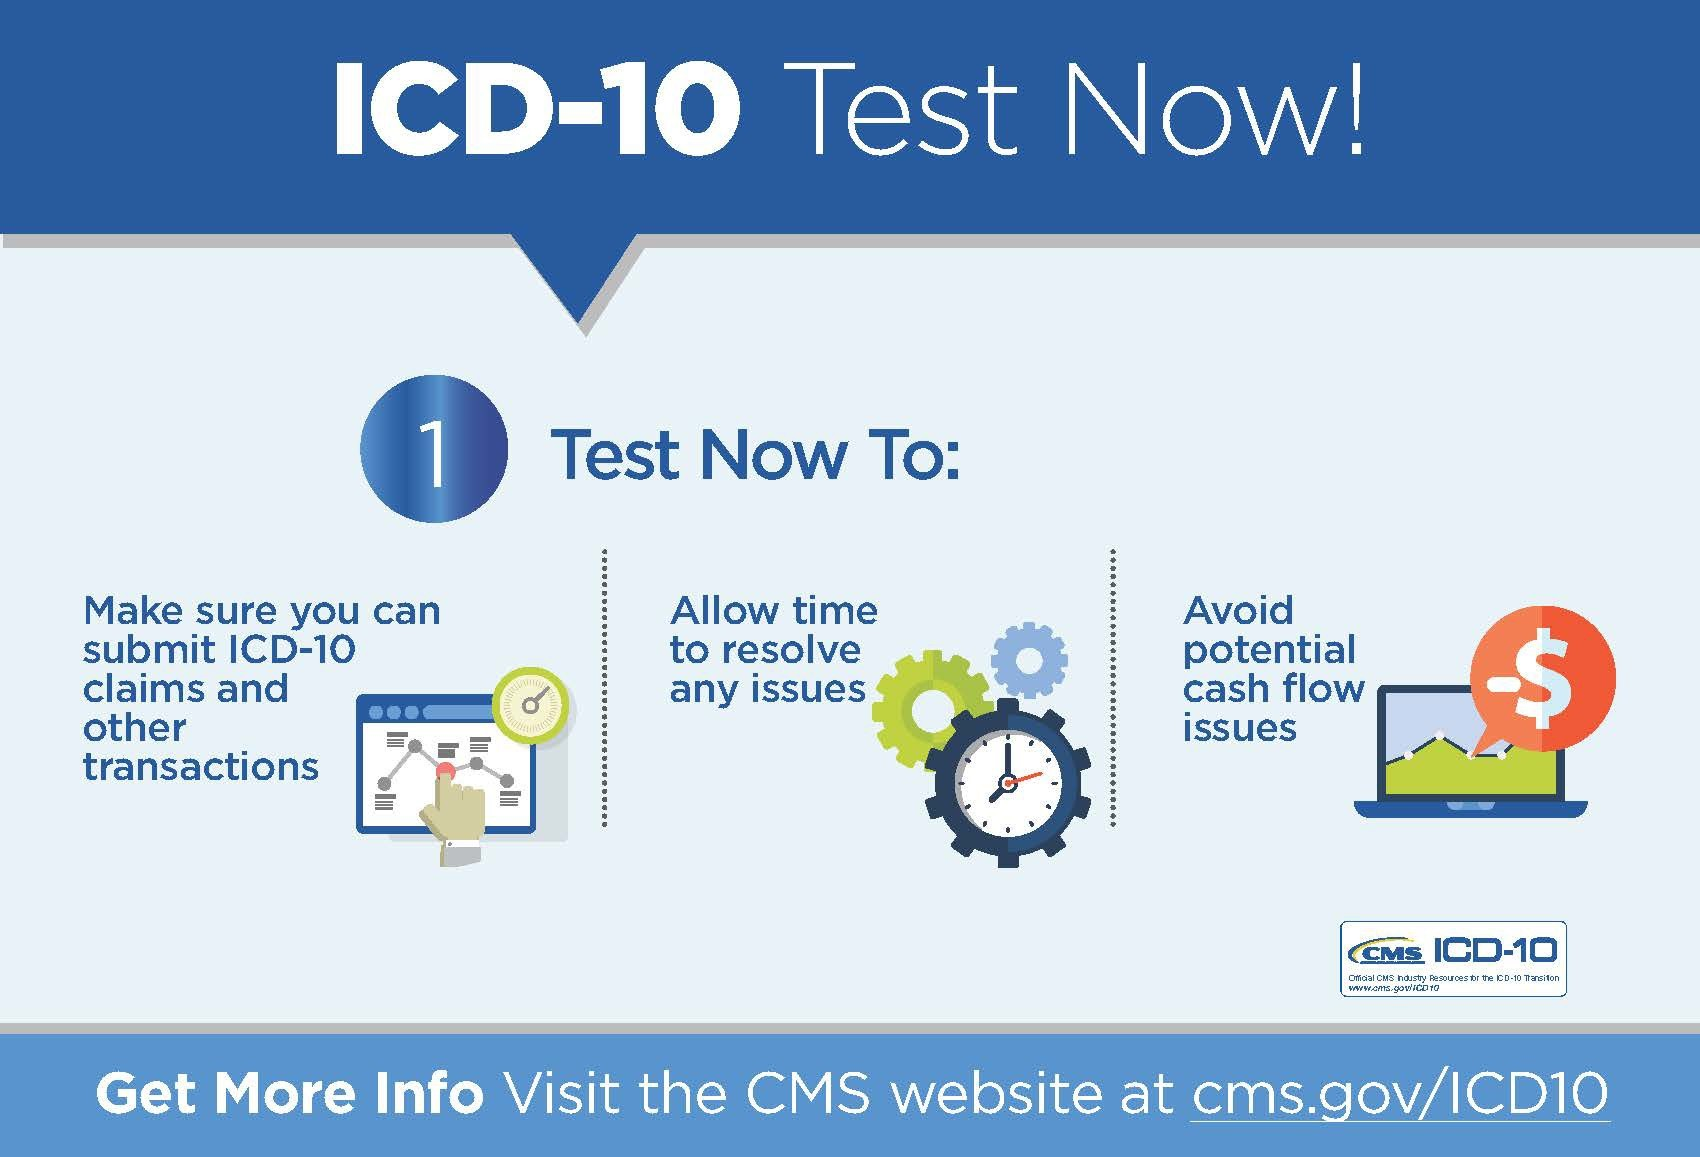 icd-10-test-now